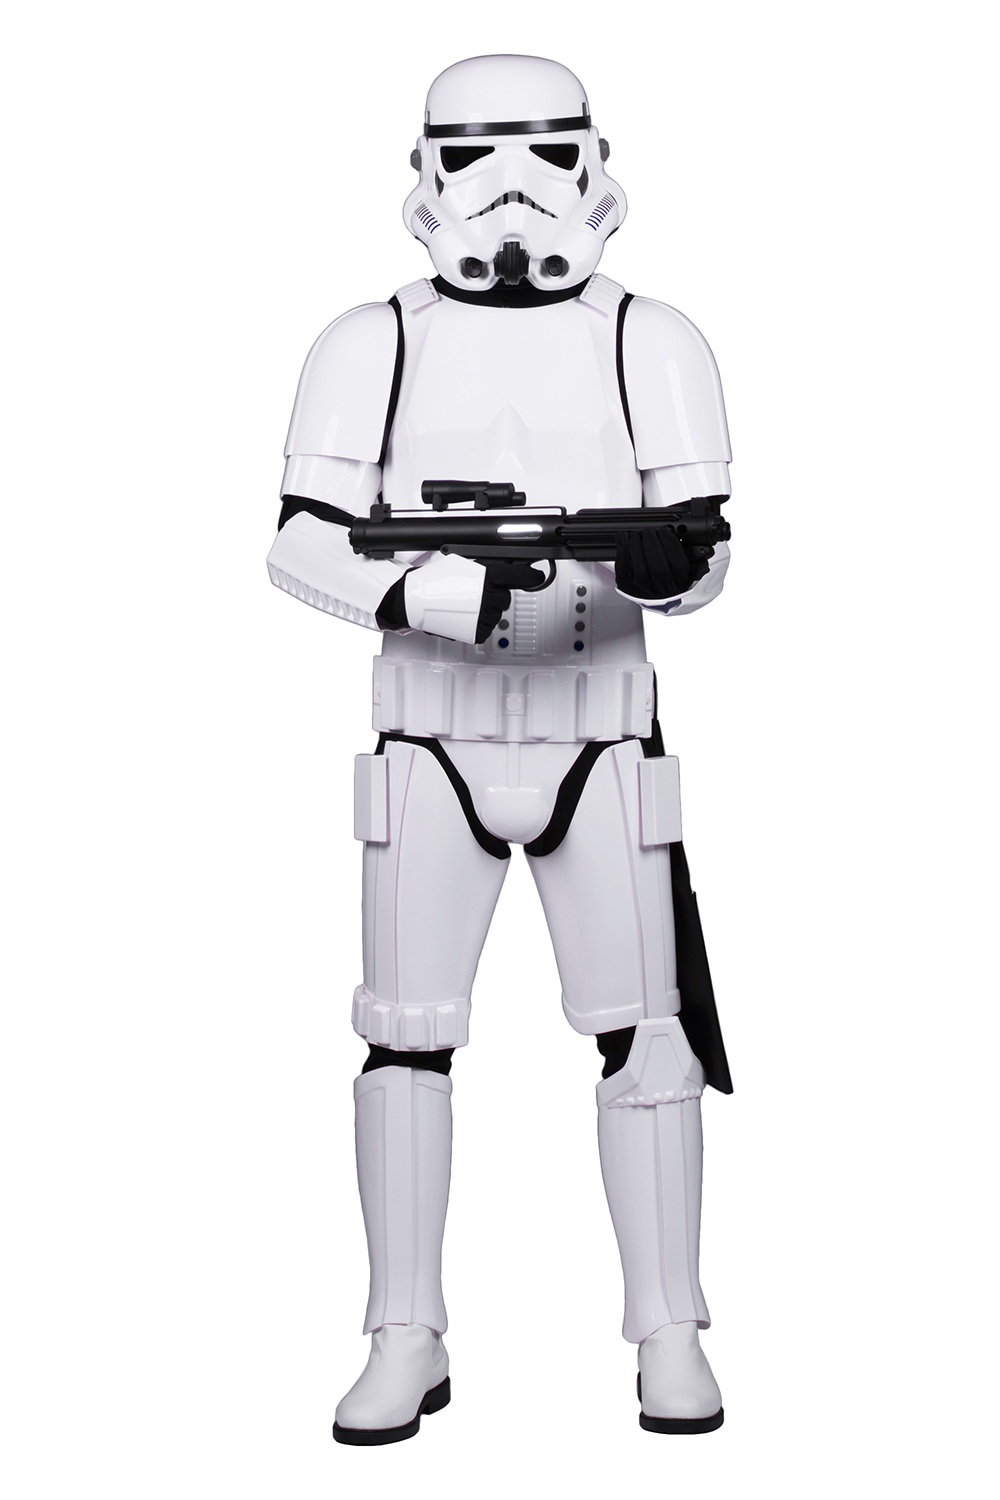 Stormtrooper Costume Armour Packages available at www.StormtrooperStore.com - The Stormtrooper Store